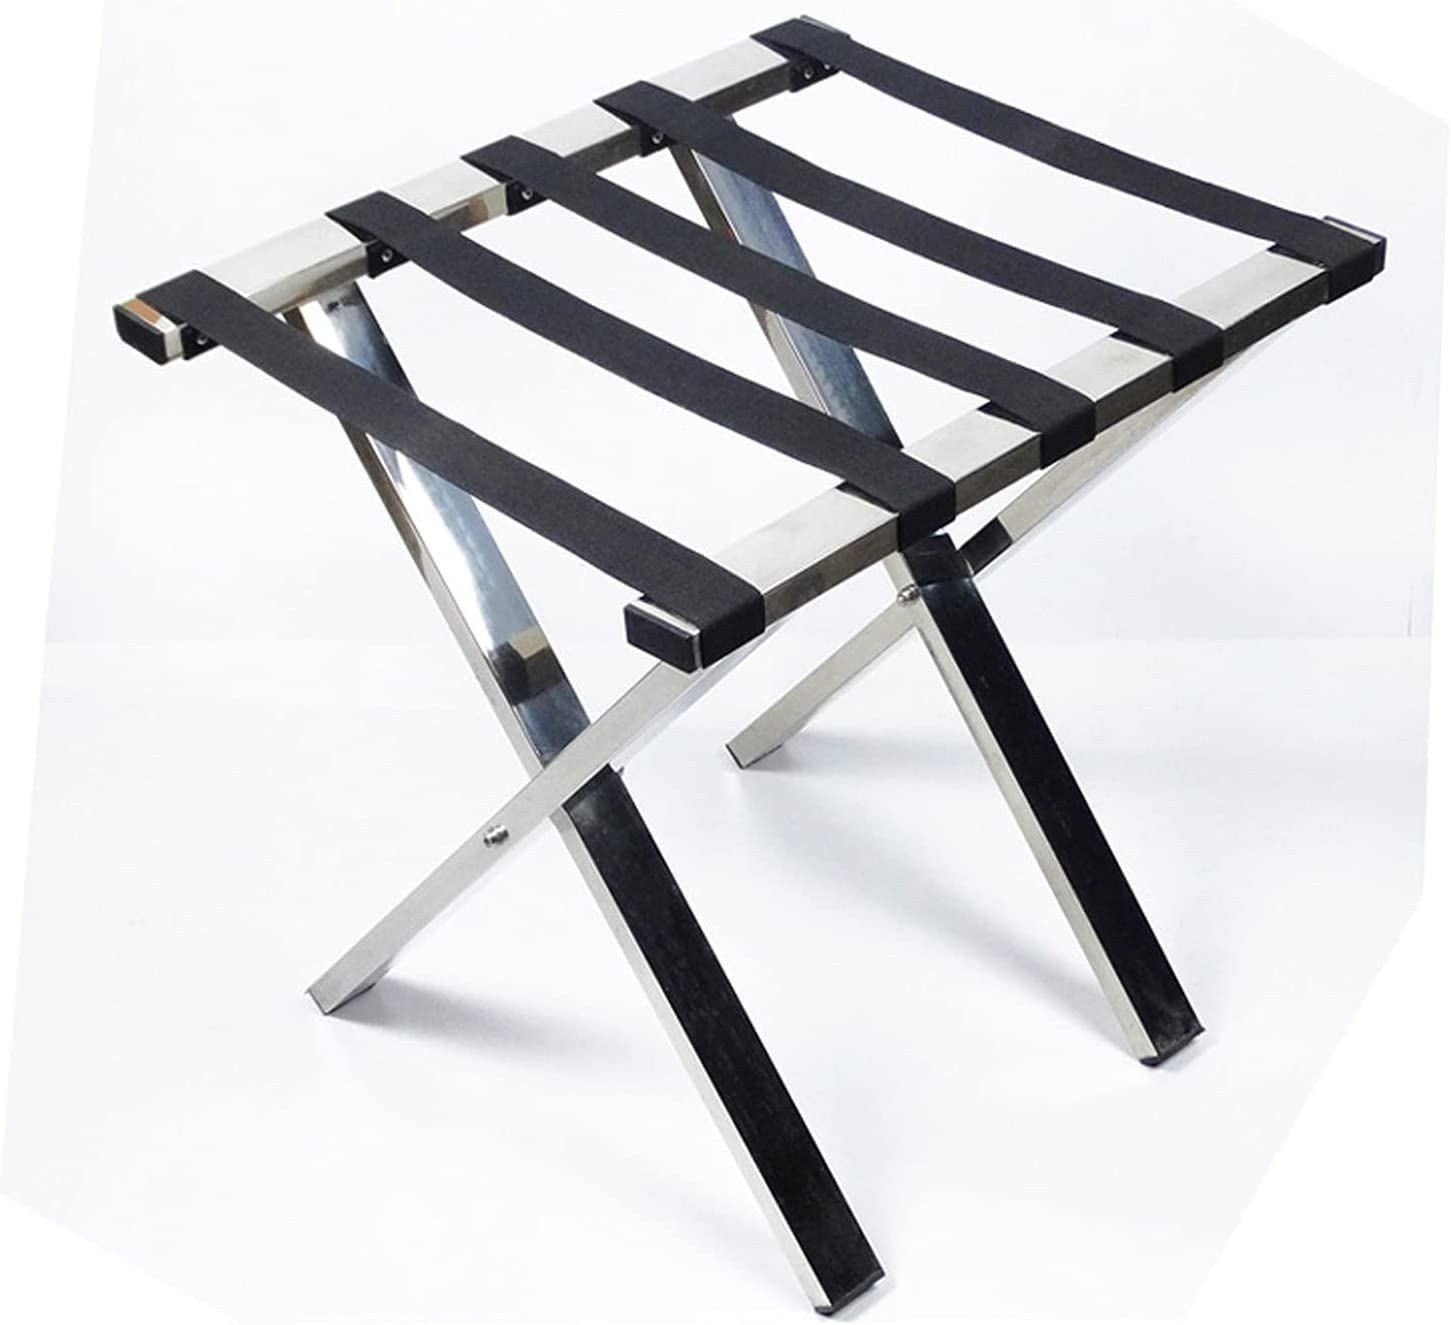 Hotel Luggage Rack Stainless High-end Max 76% OFF Rooms Steel Seattle Mall